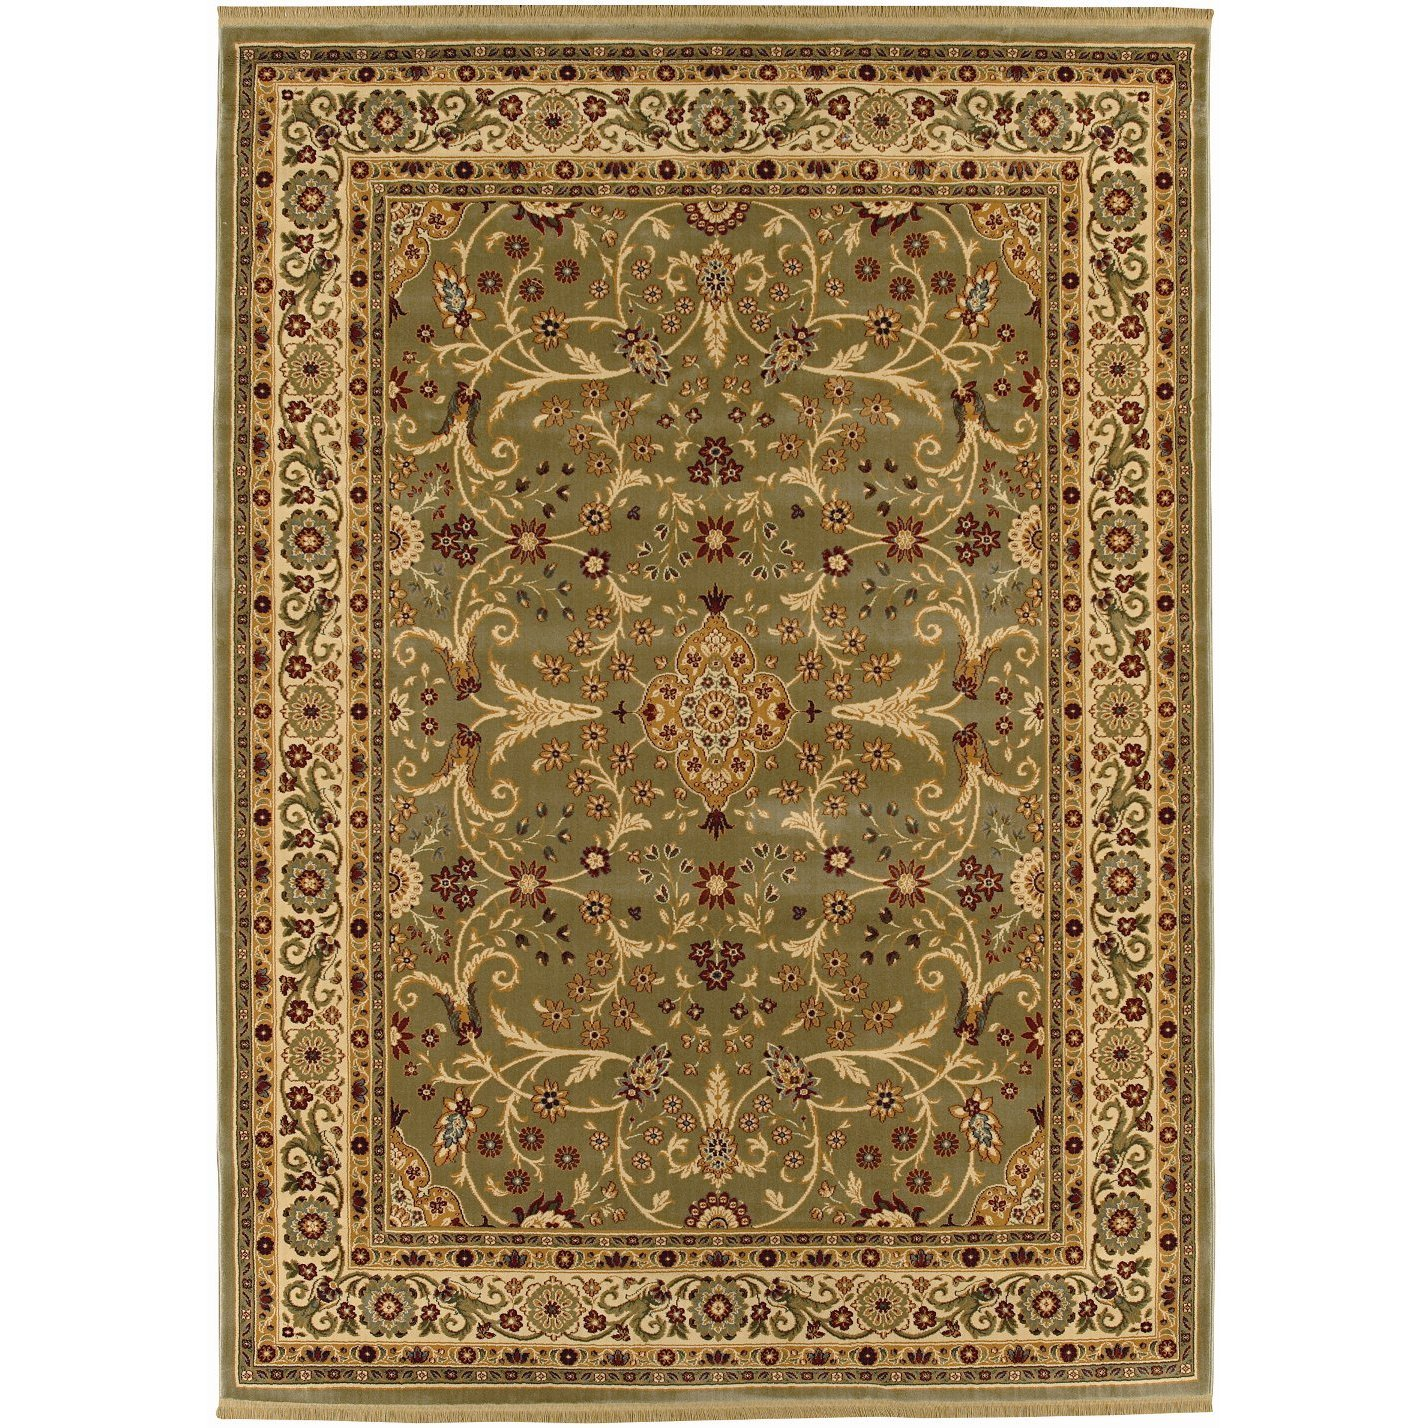 Home Gallery Rug in Garden Fantasy Pattern